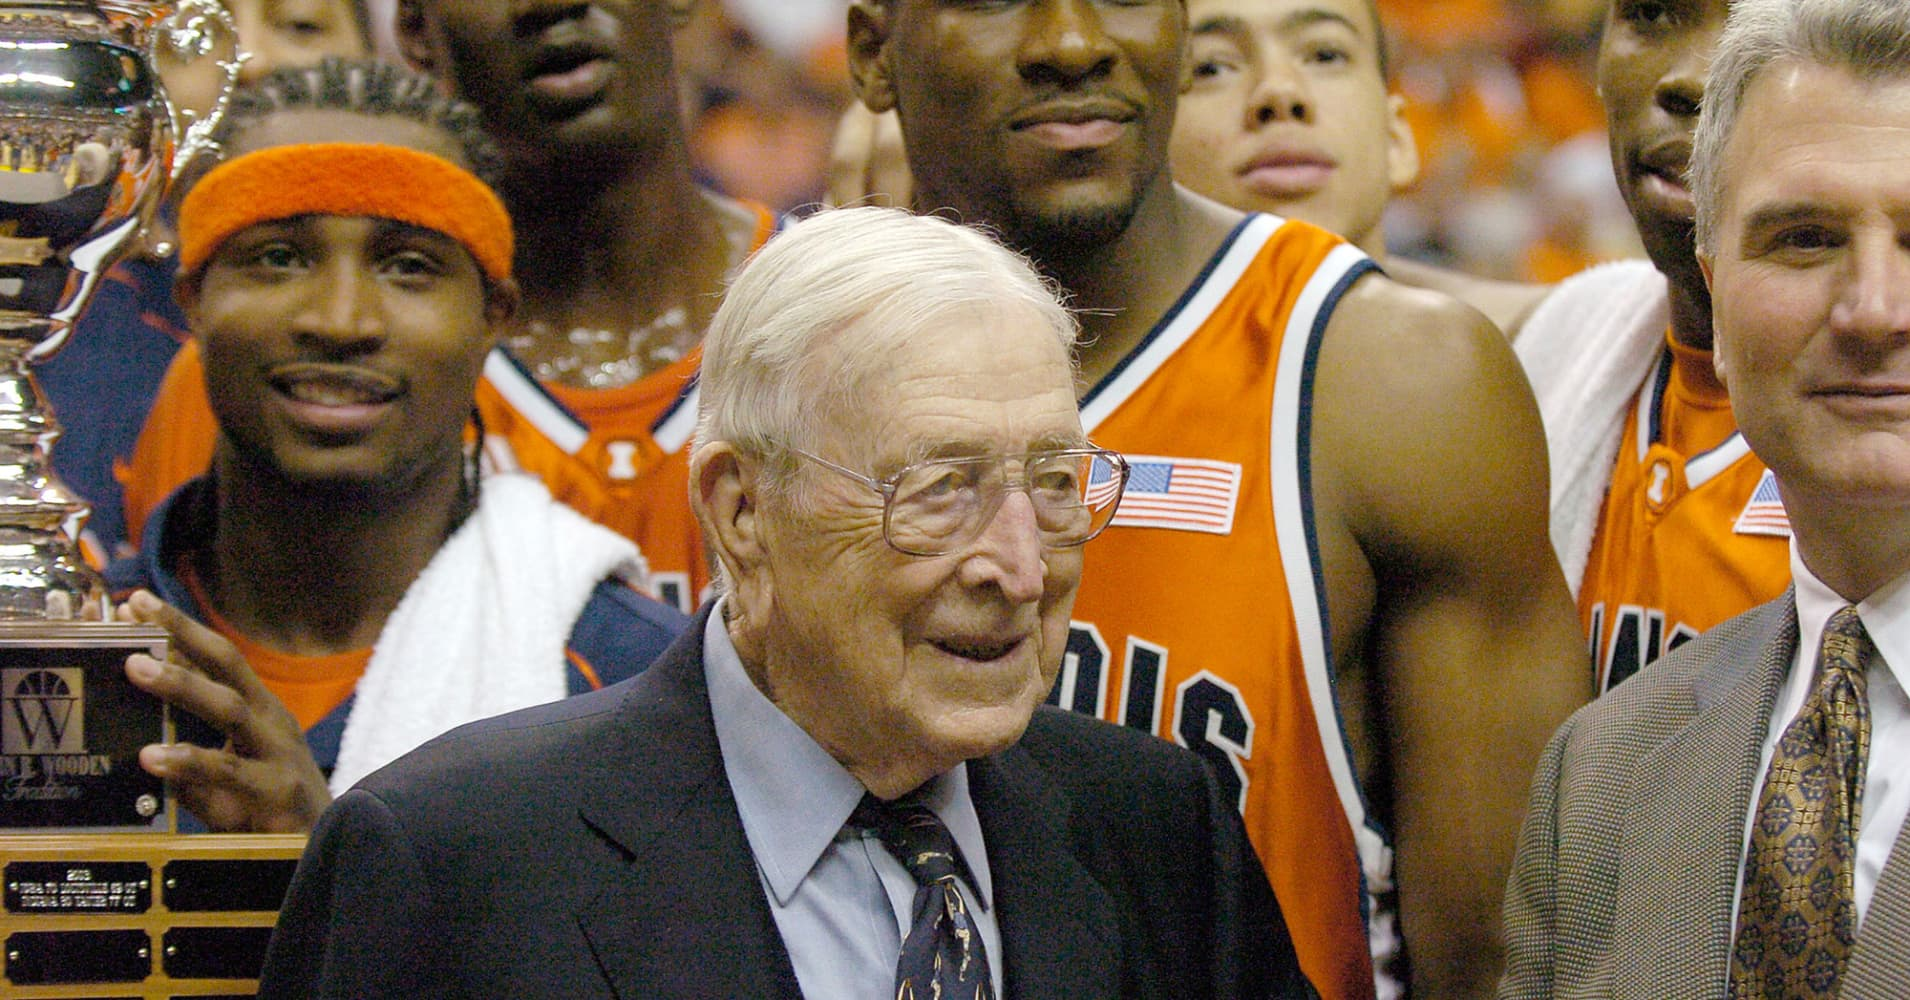 Coach John Wooden with Dee Brown, Coach Bruce Weber and other members of the winning Illinois team after Illinois 89-70 win in the John Wooden Tradition in Conseco Fieldhouse, Indianapolis on November 27, 2004.